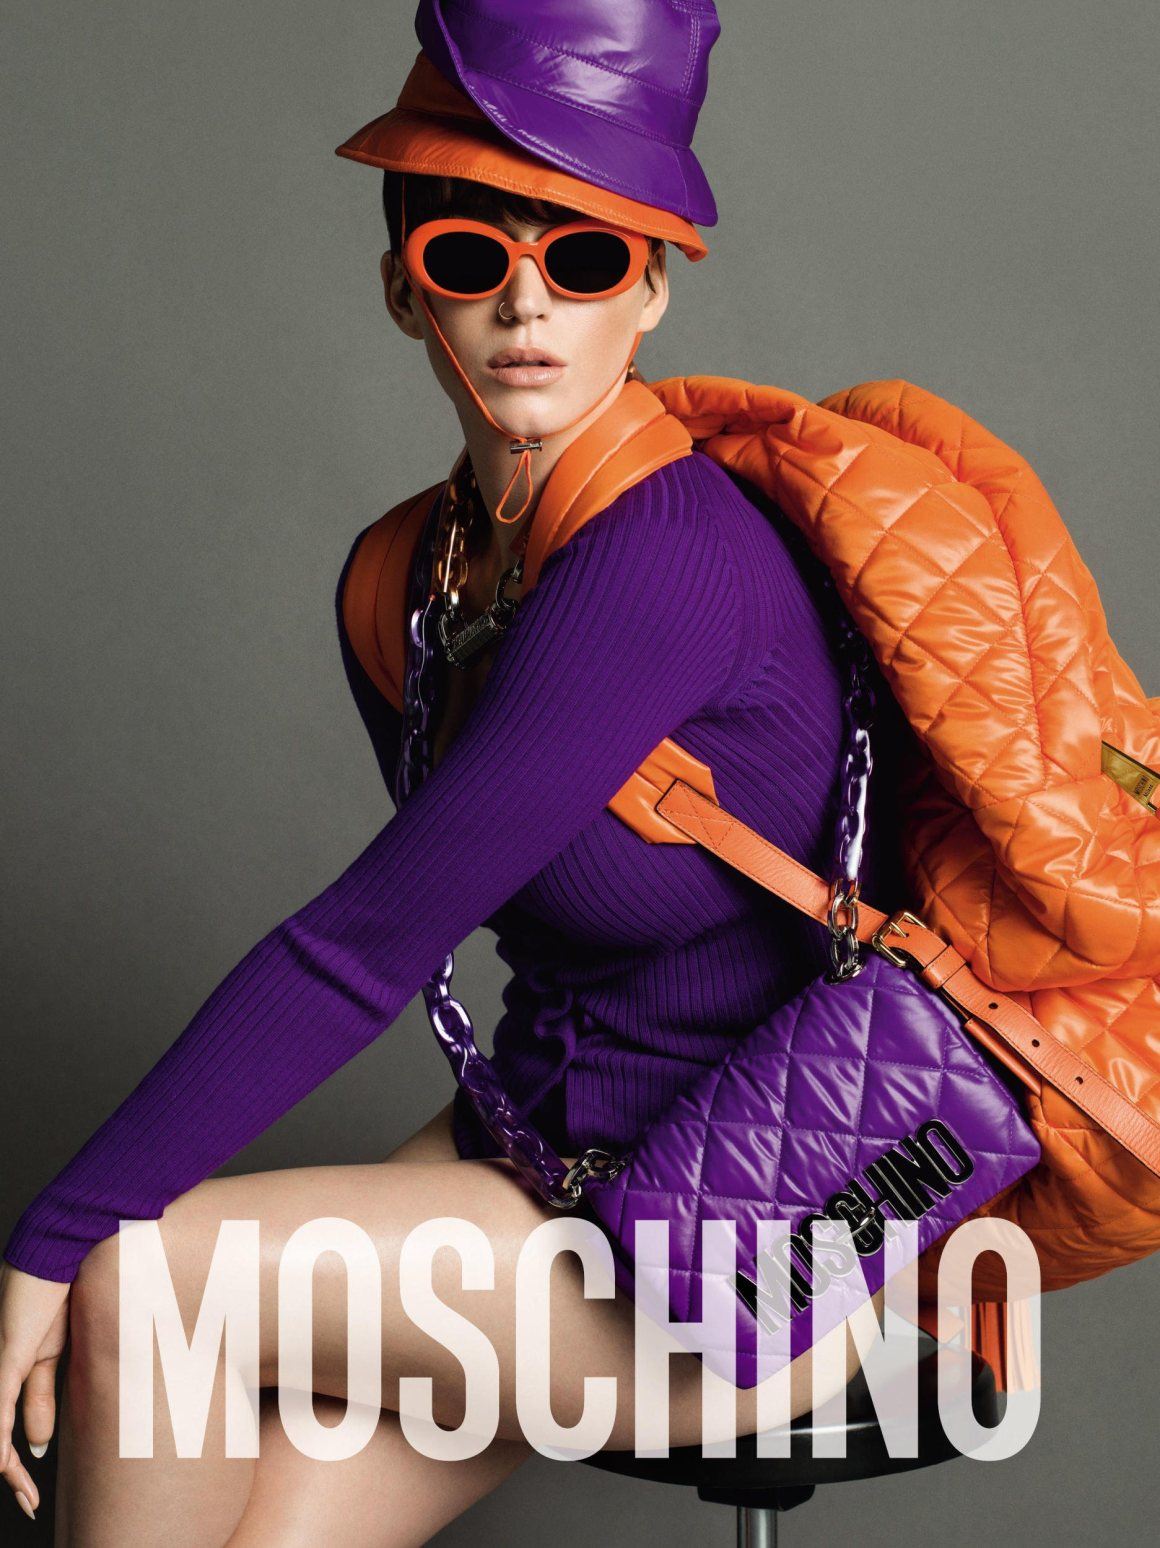 Moschino-FW15-Ad-Katy-Perry-by-Inez-and-Vinoodh-04